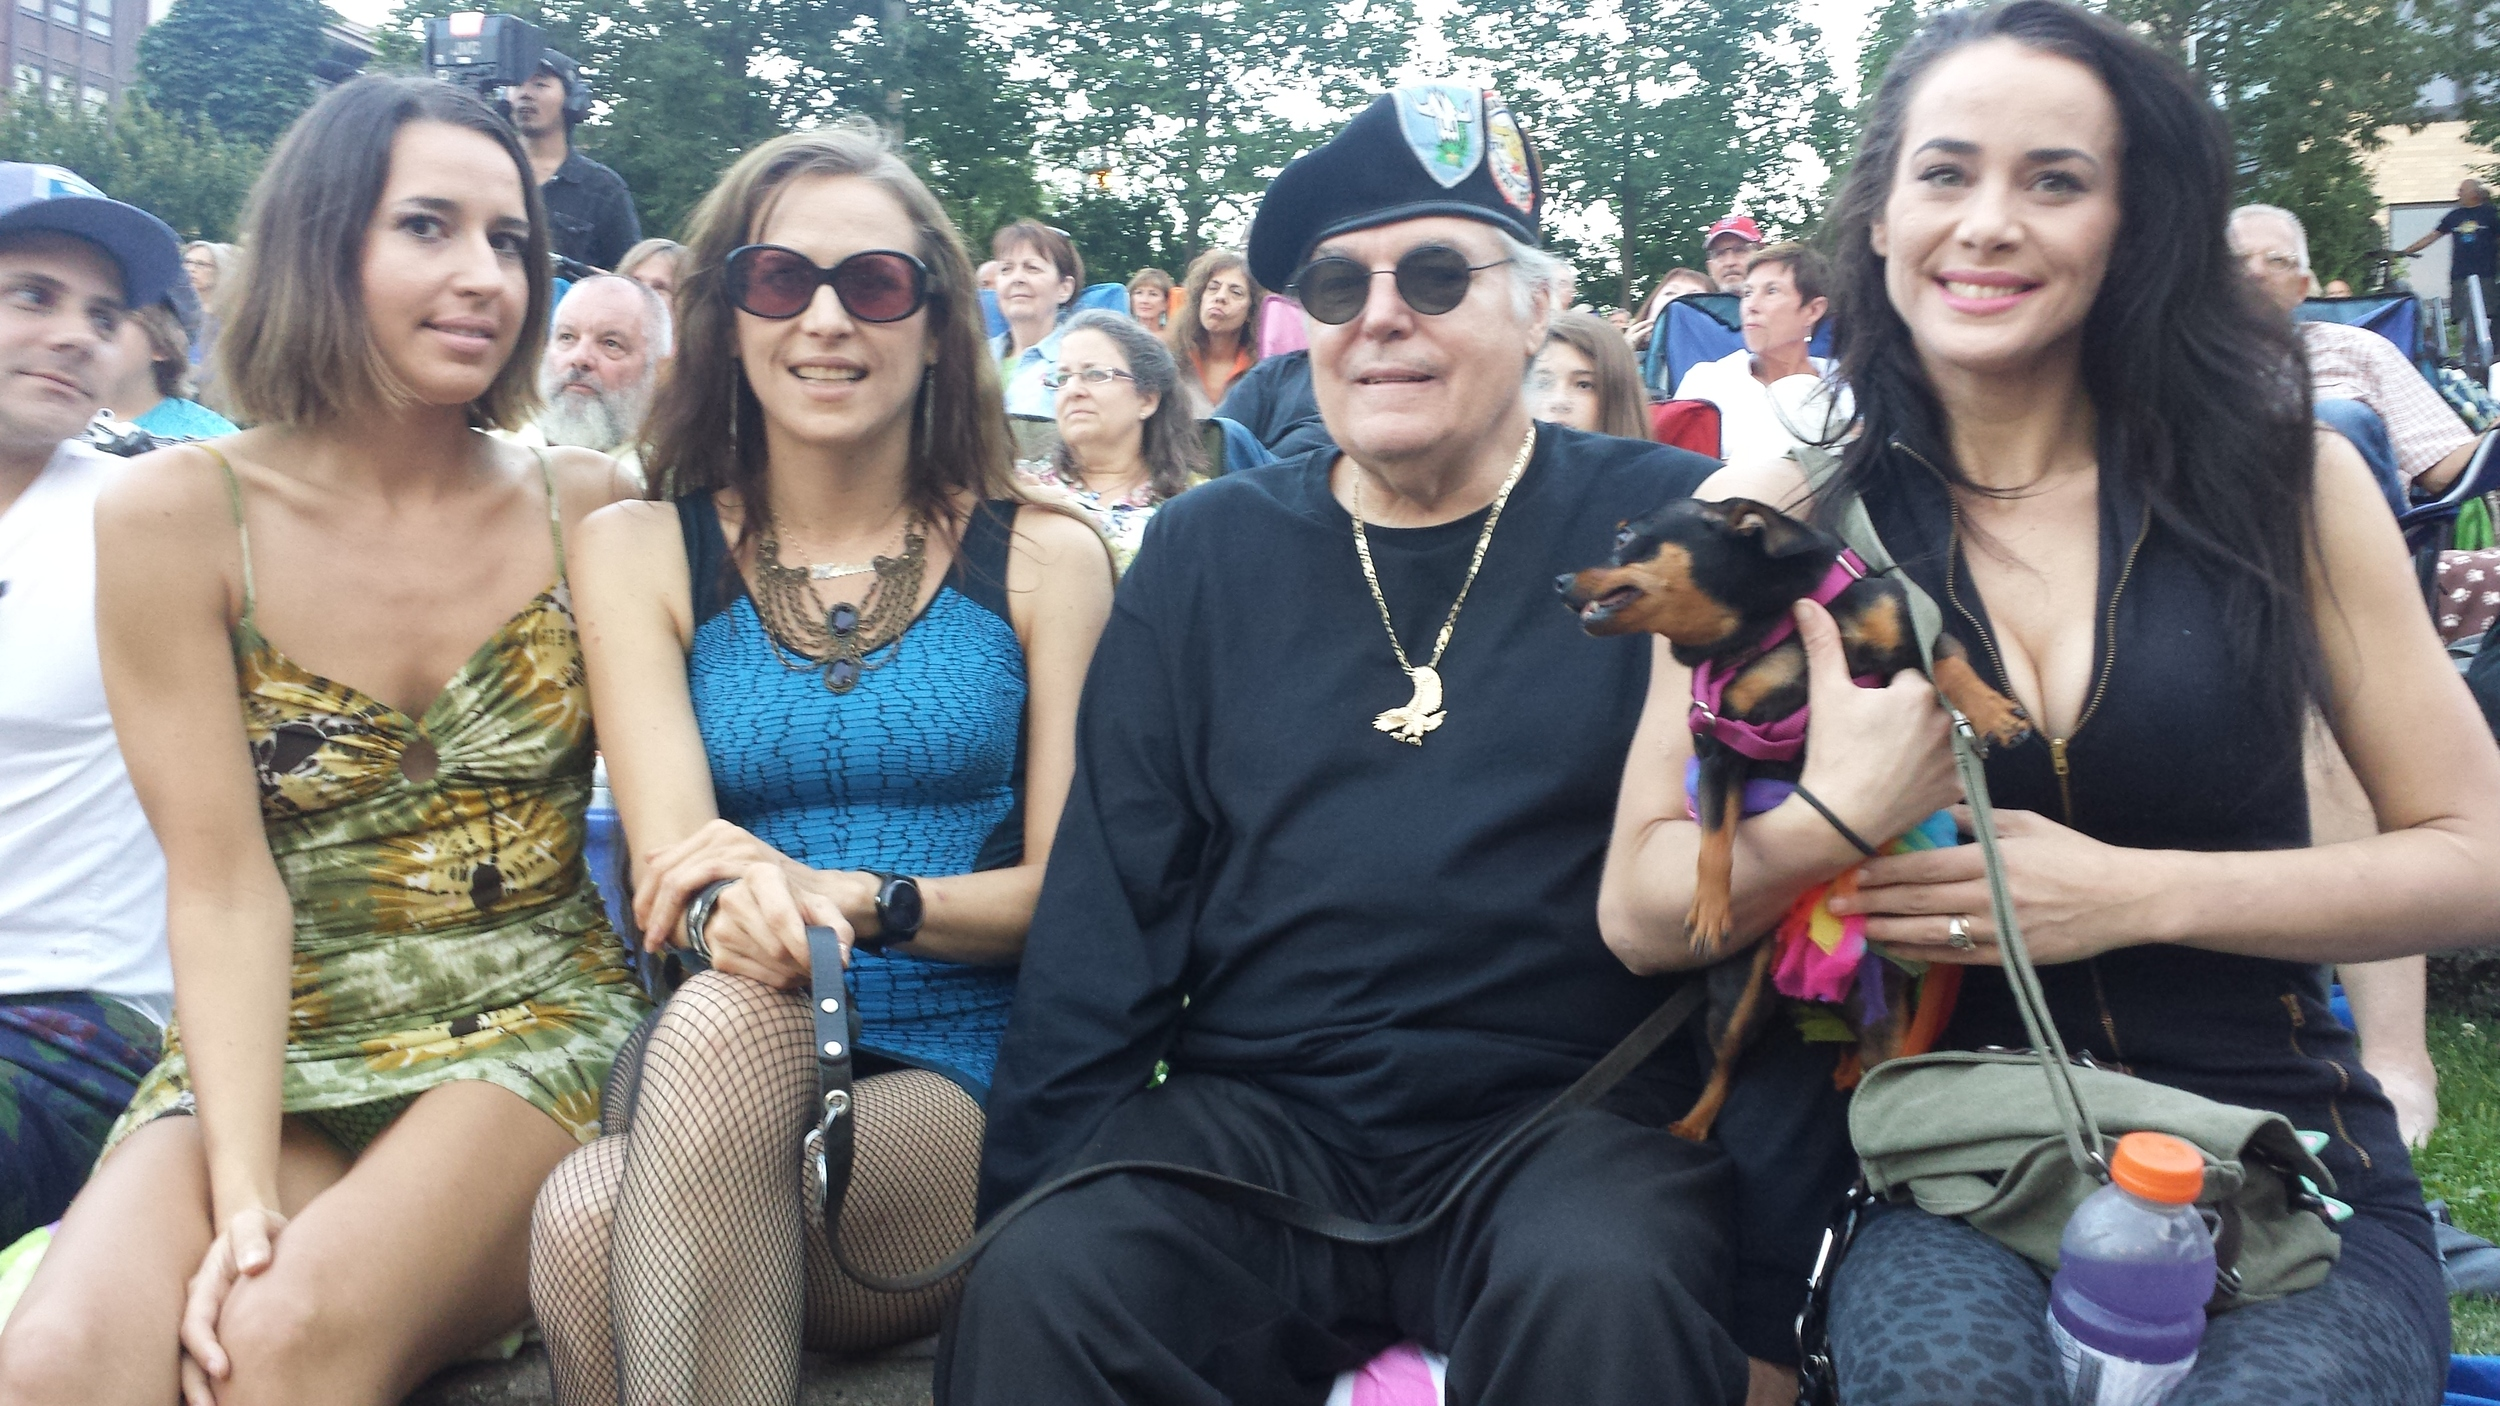 Liza, Melanie, Dennis, Lulu and Michele Ree / Salute to the Music of Bob Dylan / The Veterans' Memorial Wolfe Park Amphitheater / St. Louis Park, Minnesota / August 9th, 2014 / Photo by Julie Ulrich